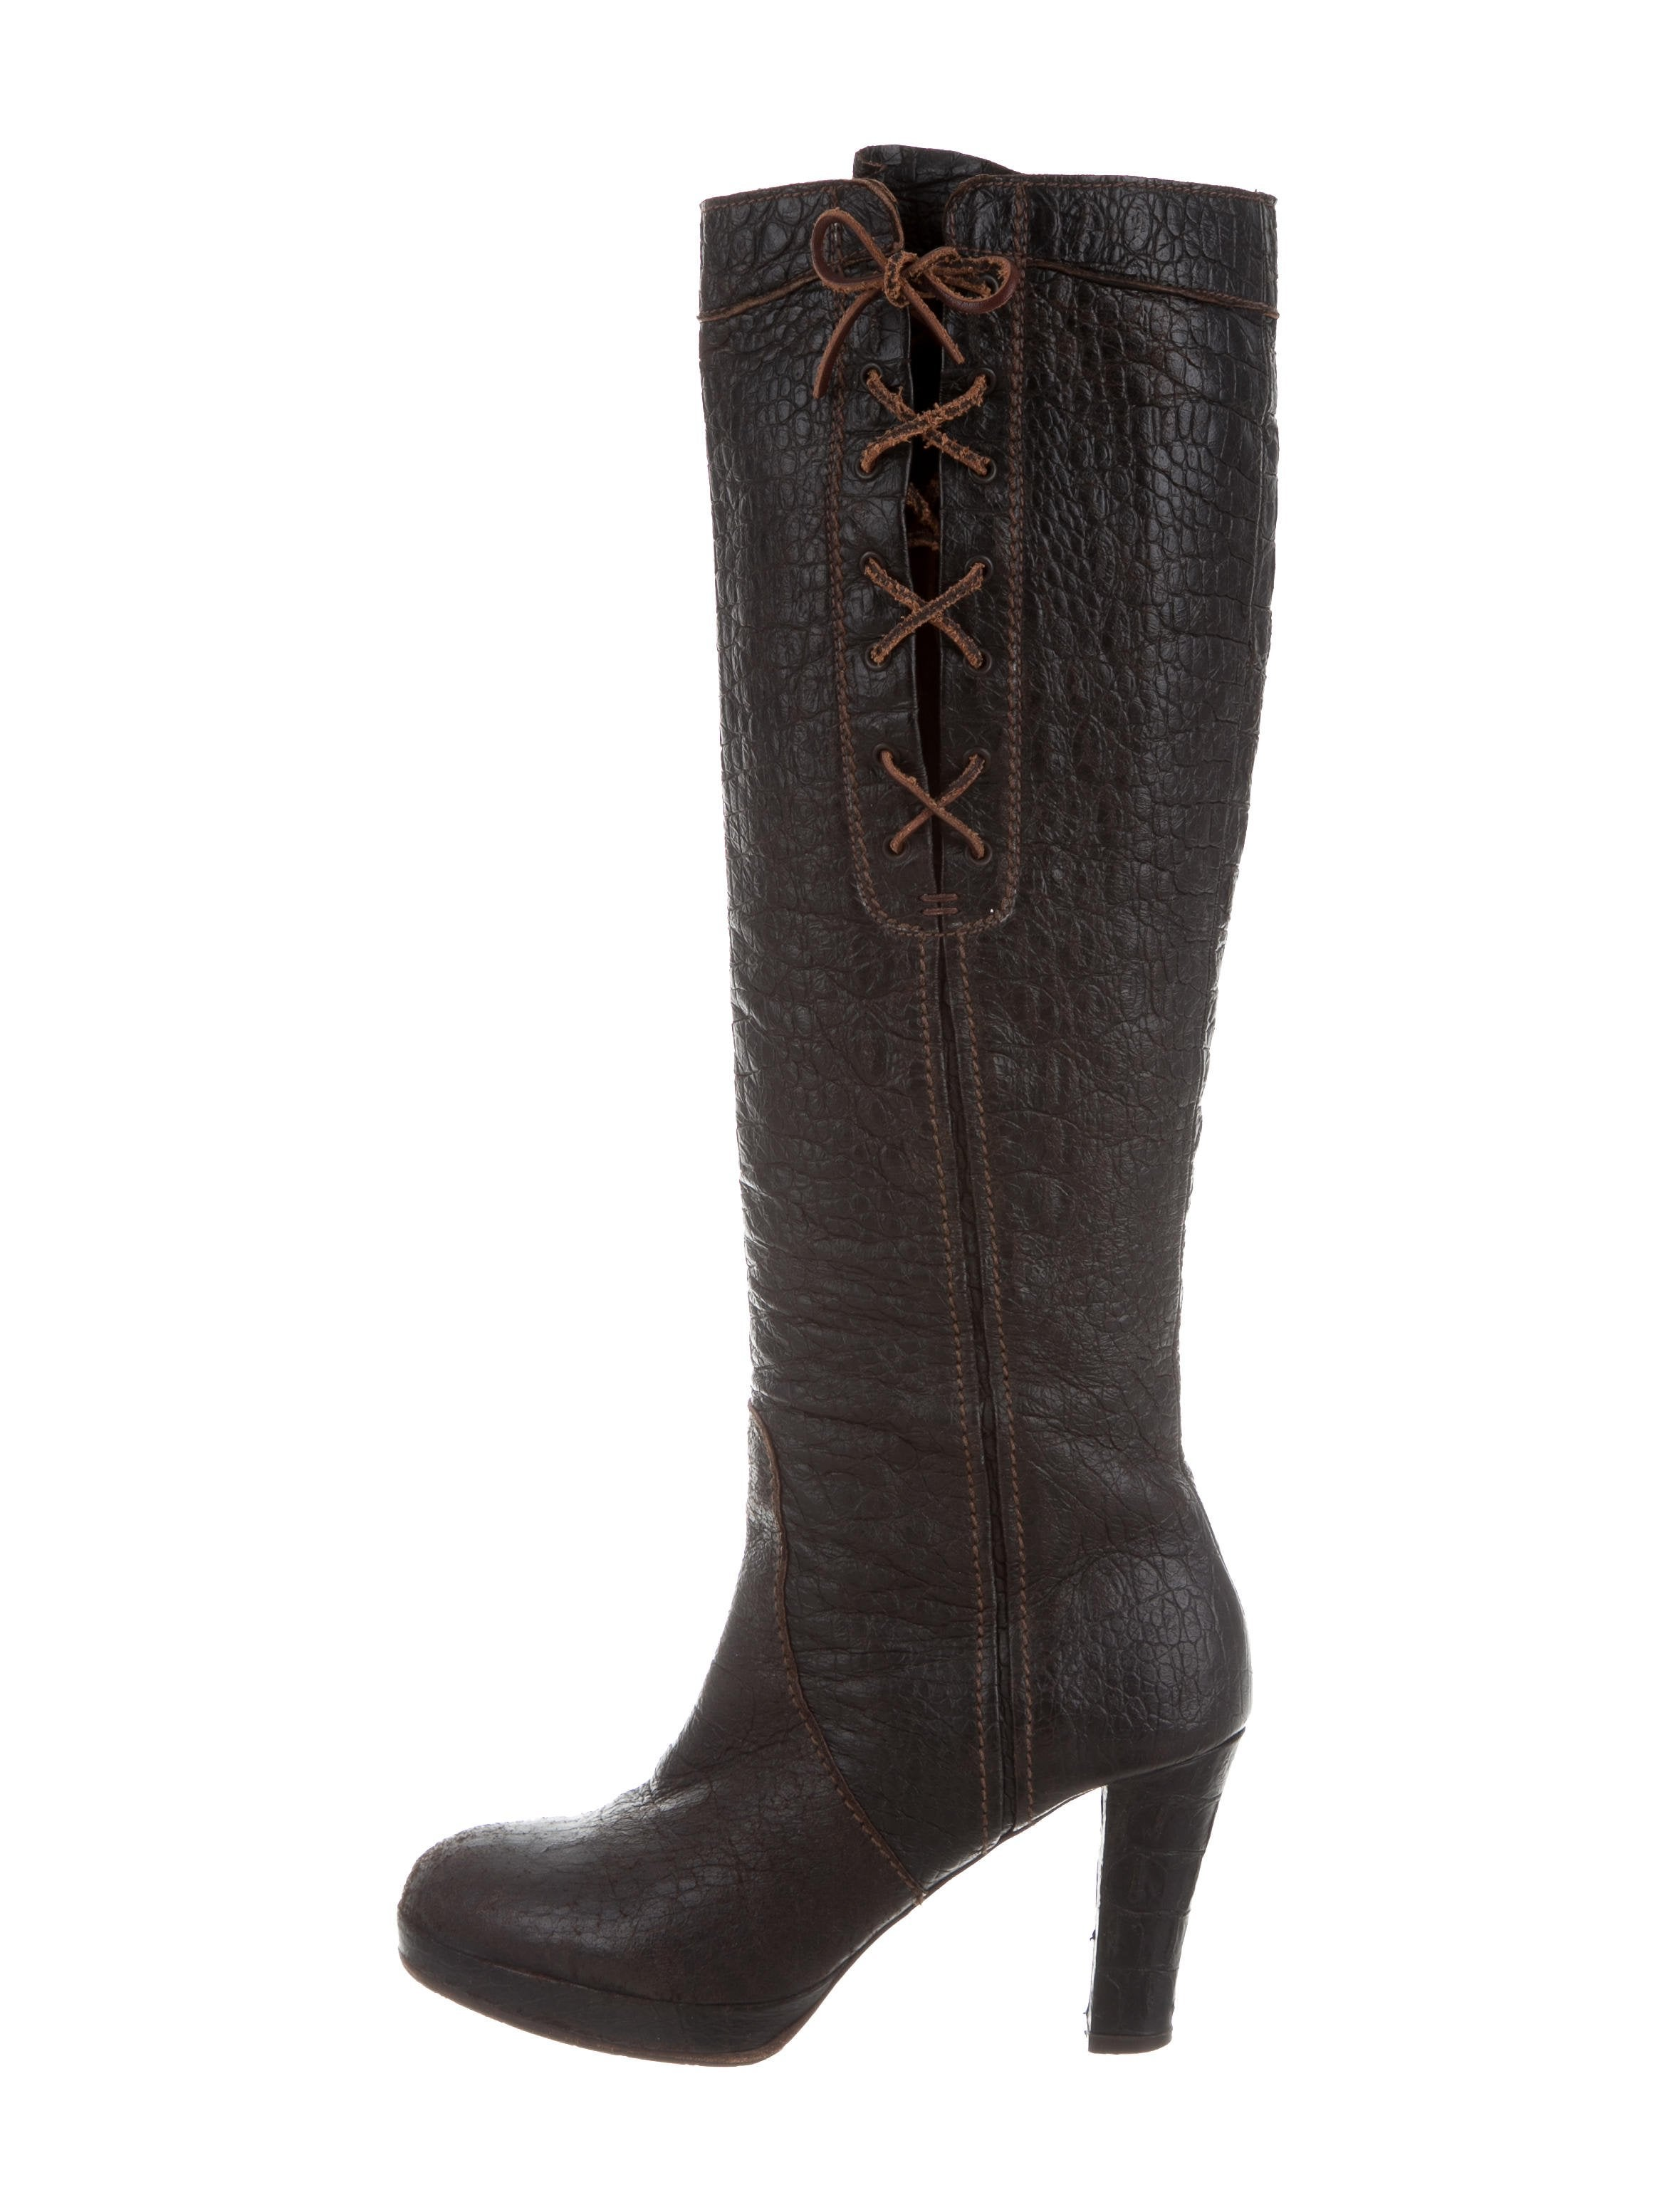 Henry Beguelin Leather Knee-High Boots w/ Tags many kinds of tjJVq